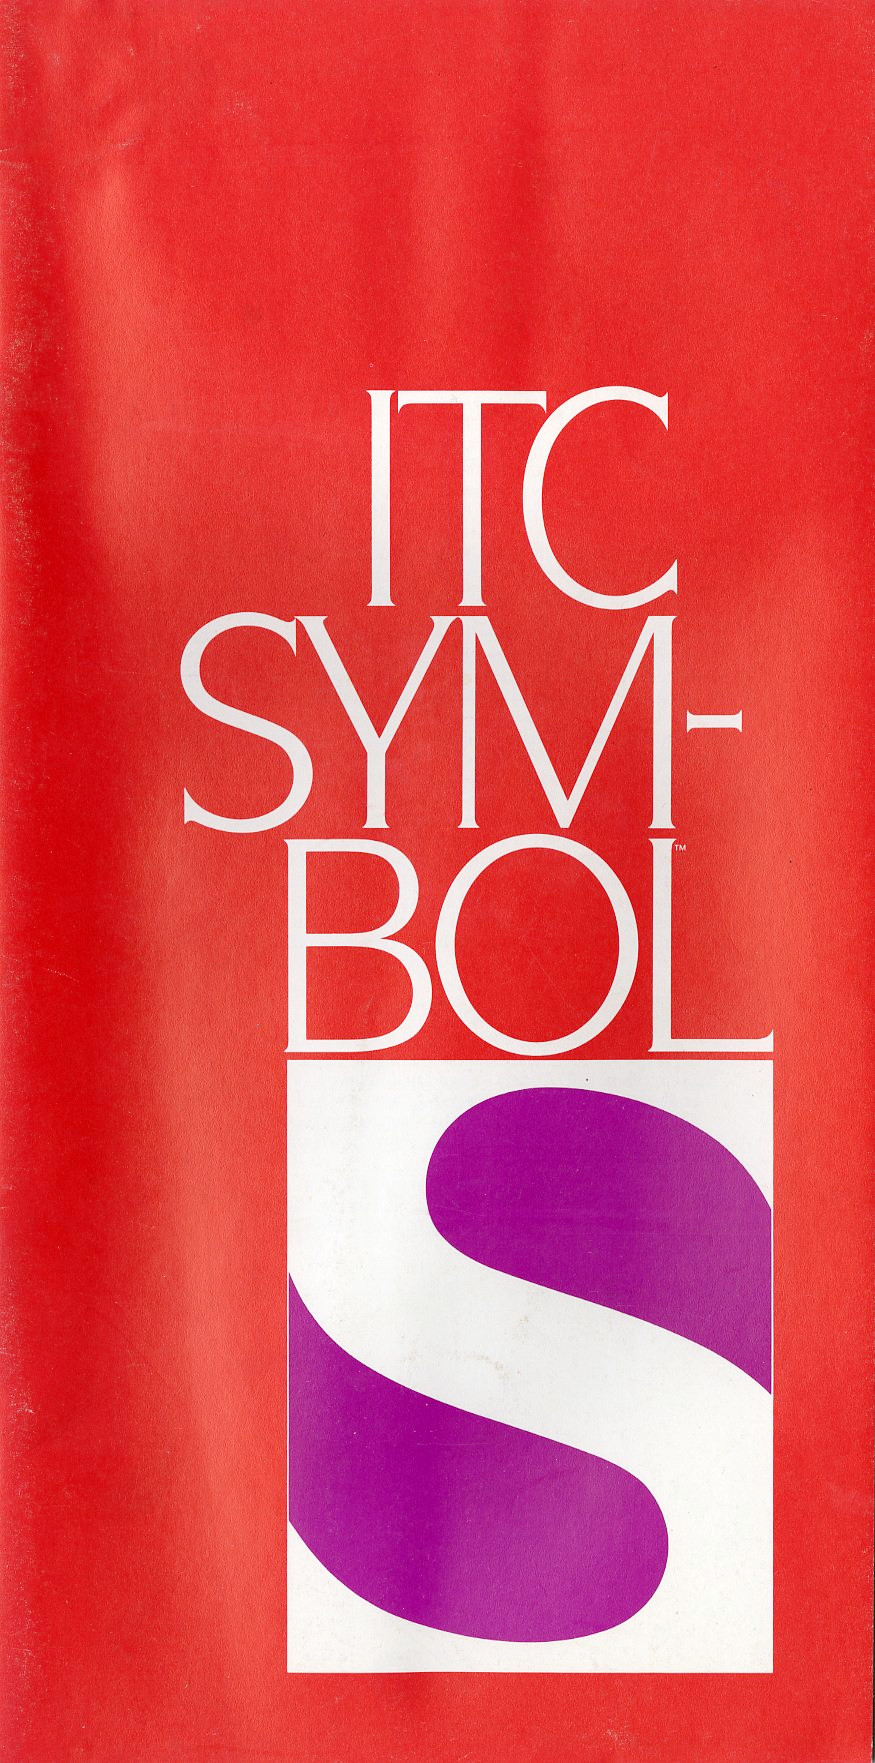 The International Typeface Corporation was one of the first typeface foundries born of out the world of photos.